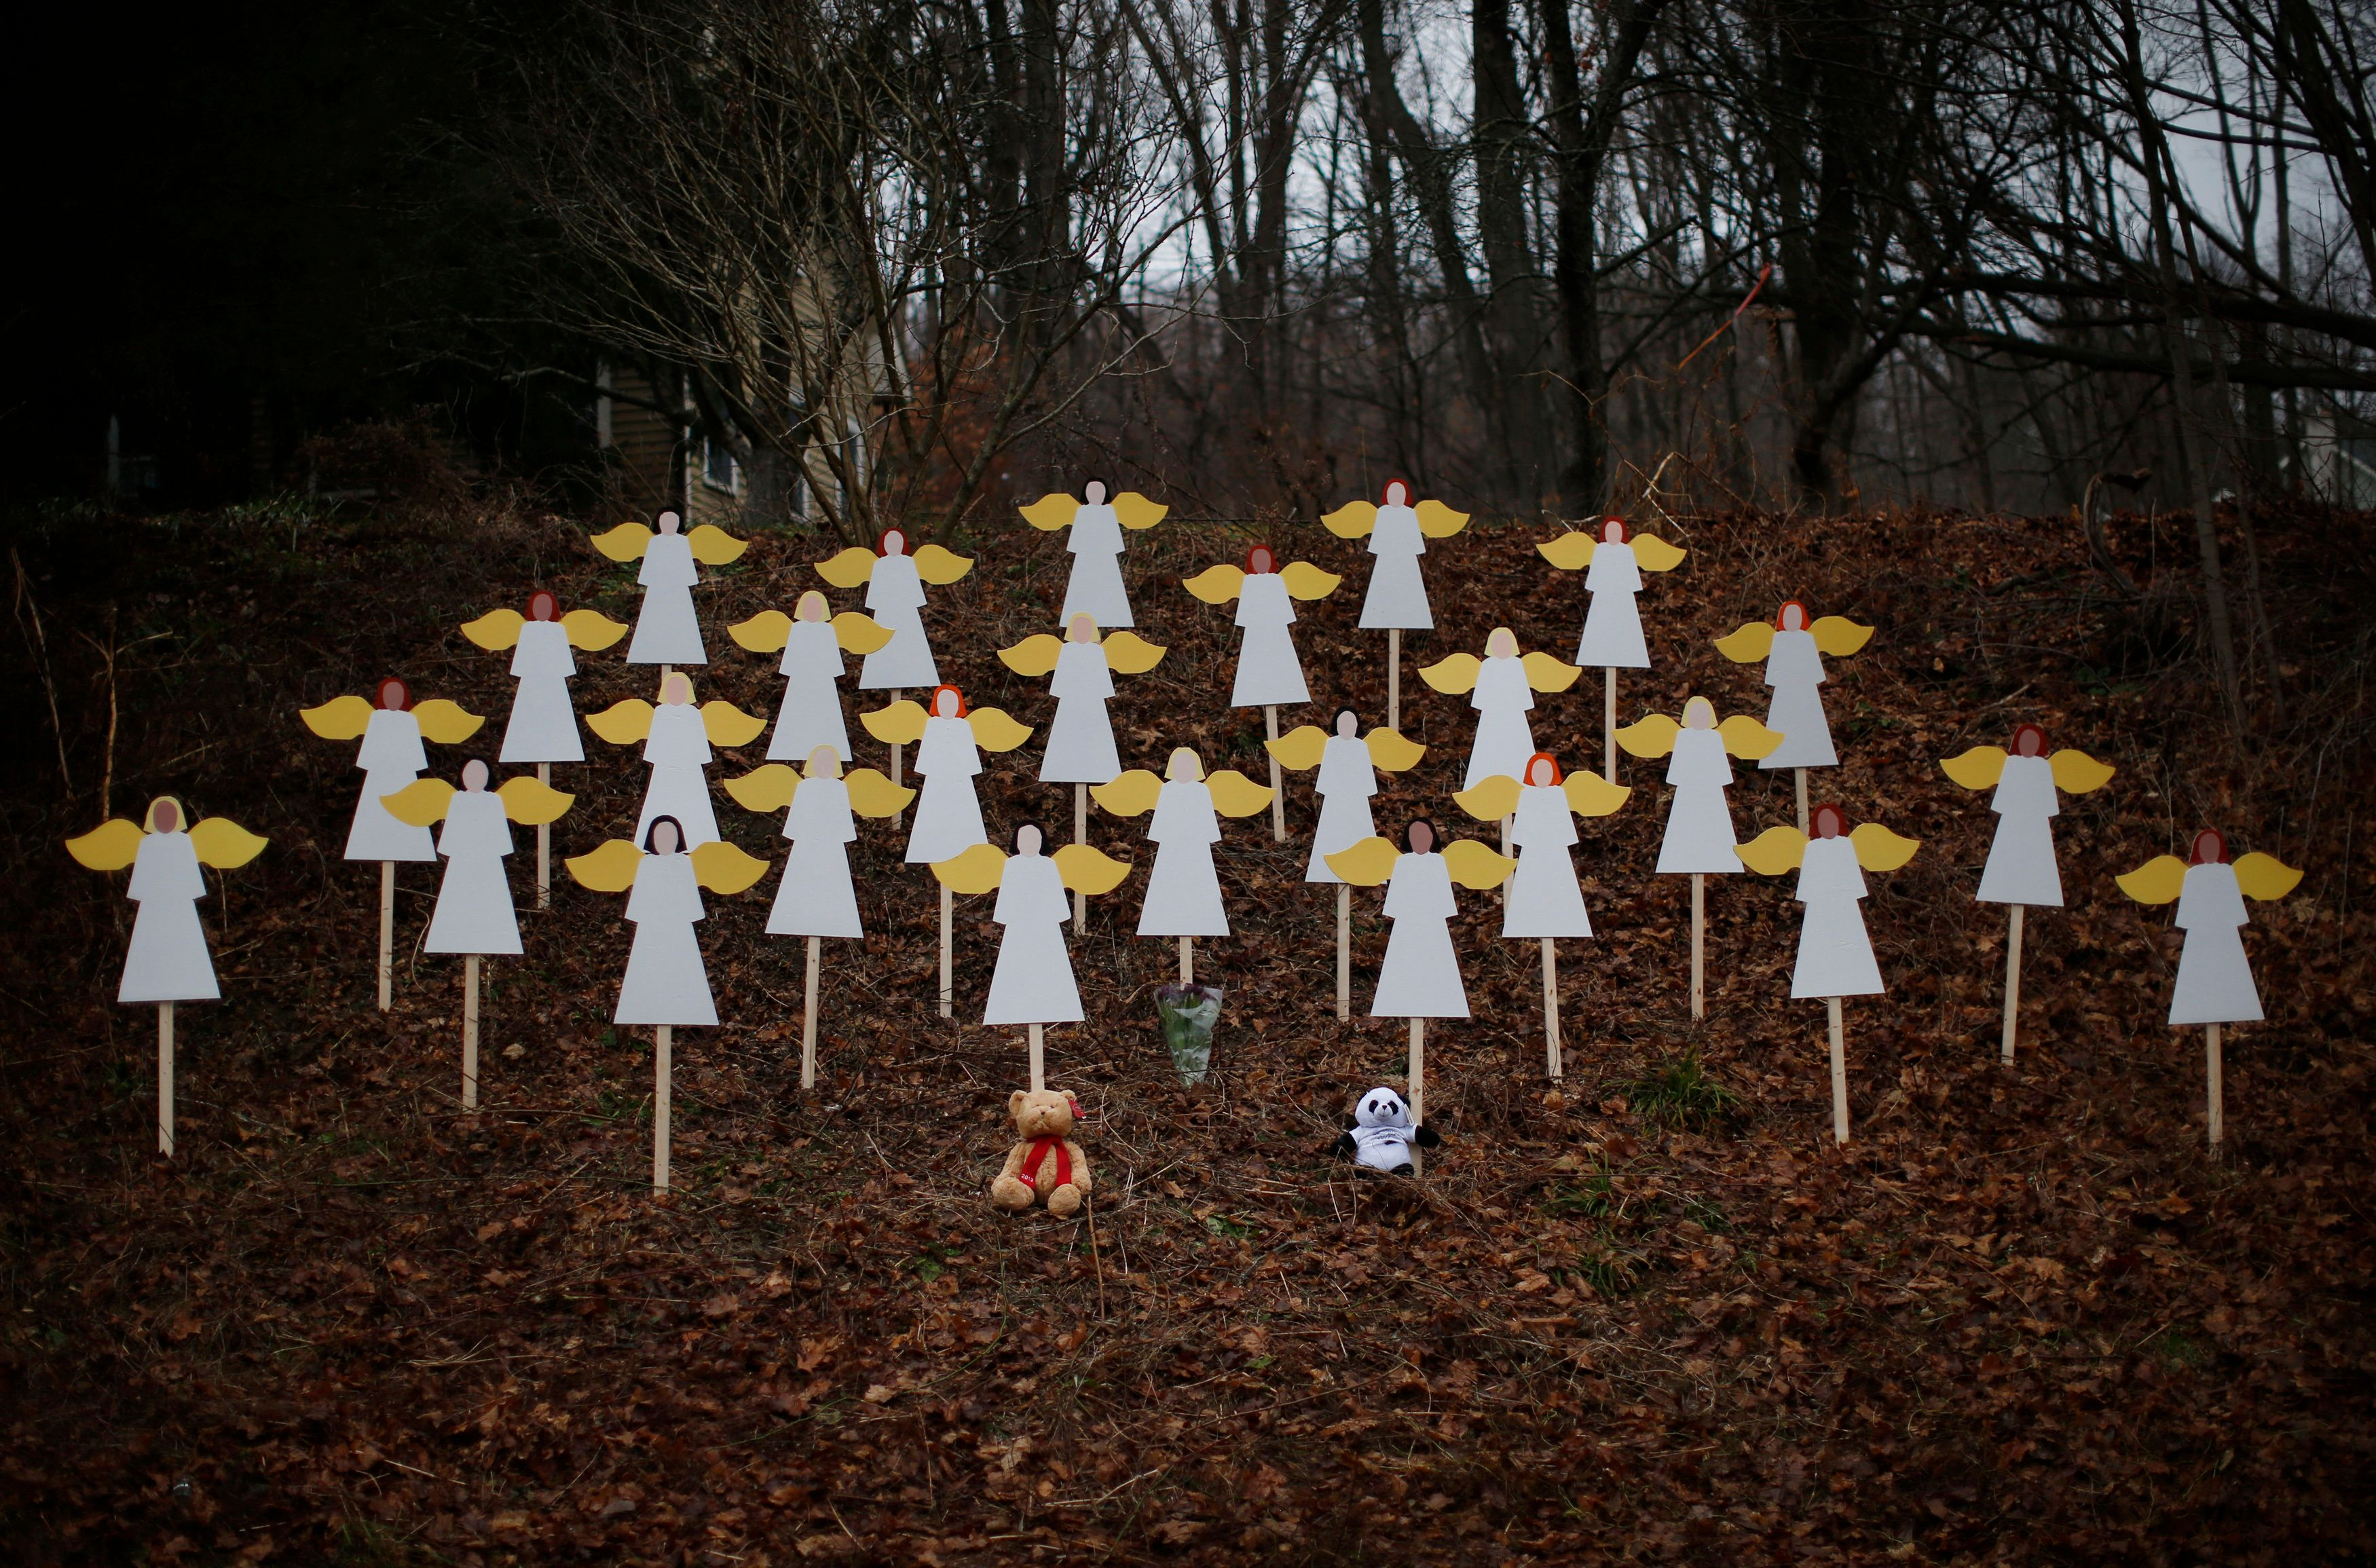 Twenty-seven wooden angel figures are seen placed in a wooded area beside a road near the Sandy Hook Elementary School for the victims of a school shooting in Newtown, Connecticut December 16, 2012. Twelve girls, eight boys and six adult women were killed in the shooting on Friday at the Sandy Hook Elementary School in Newtown.  REUTERS/Mike Segar   (UNITED STATES - Tags: CRIME LAW EDUCATION TPX IMAGES OF THE DAY)